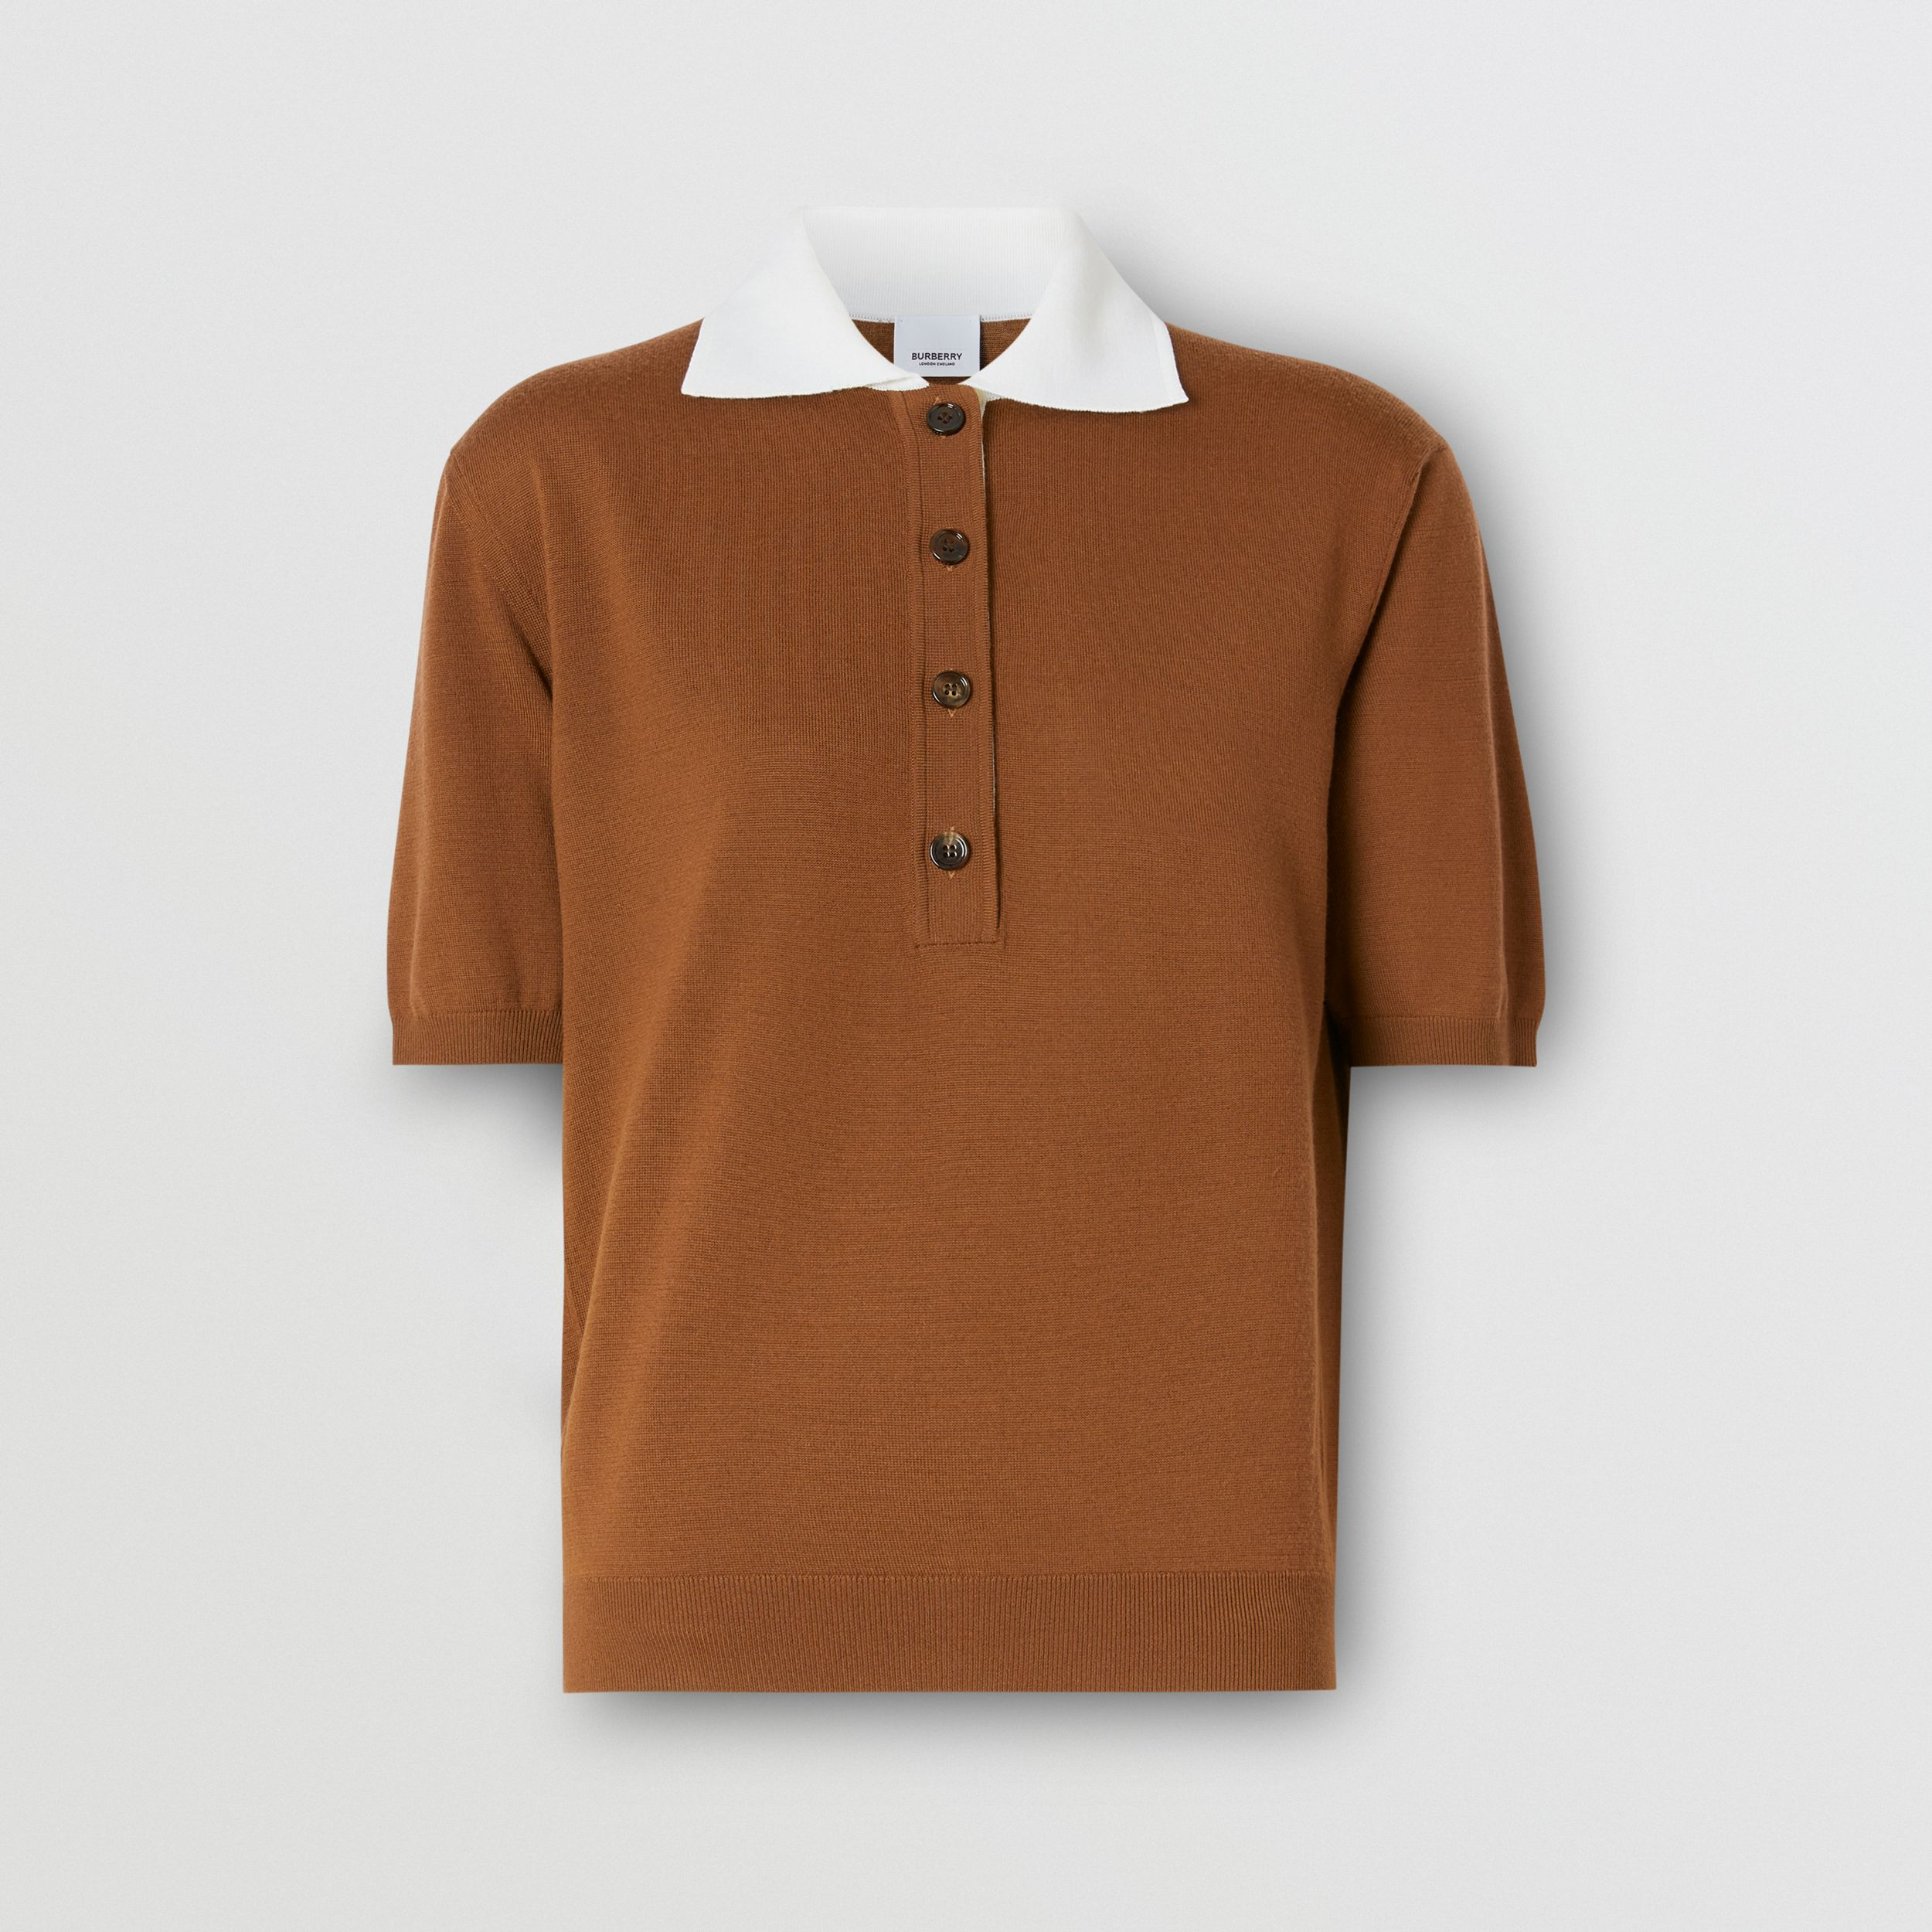 Logo Appliqué Two-tone Wool Polo Shirt in Mahogany - Women | Burberry - 4